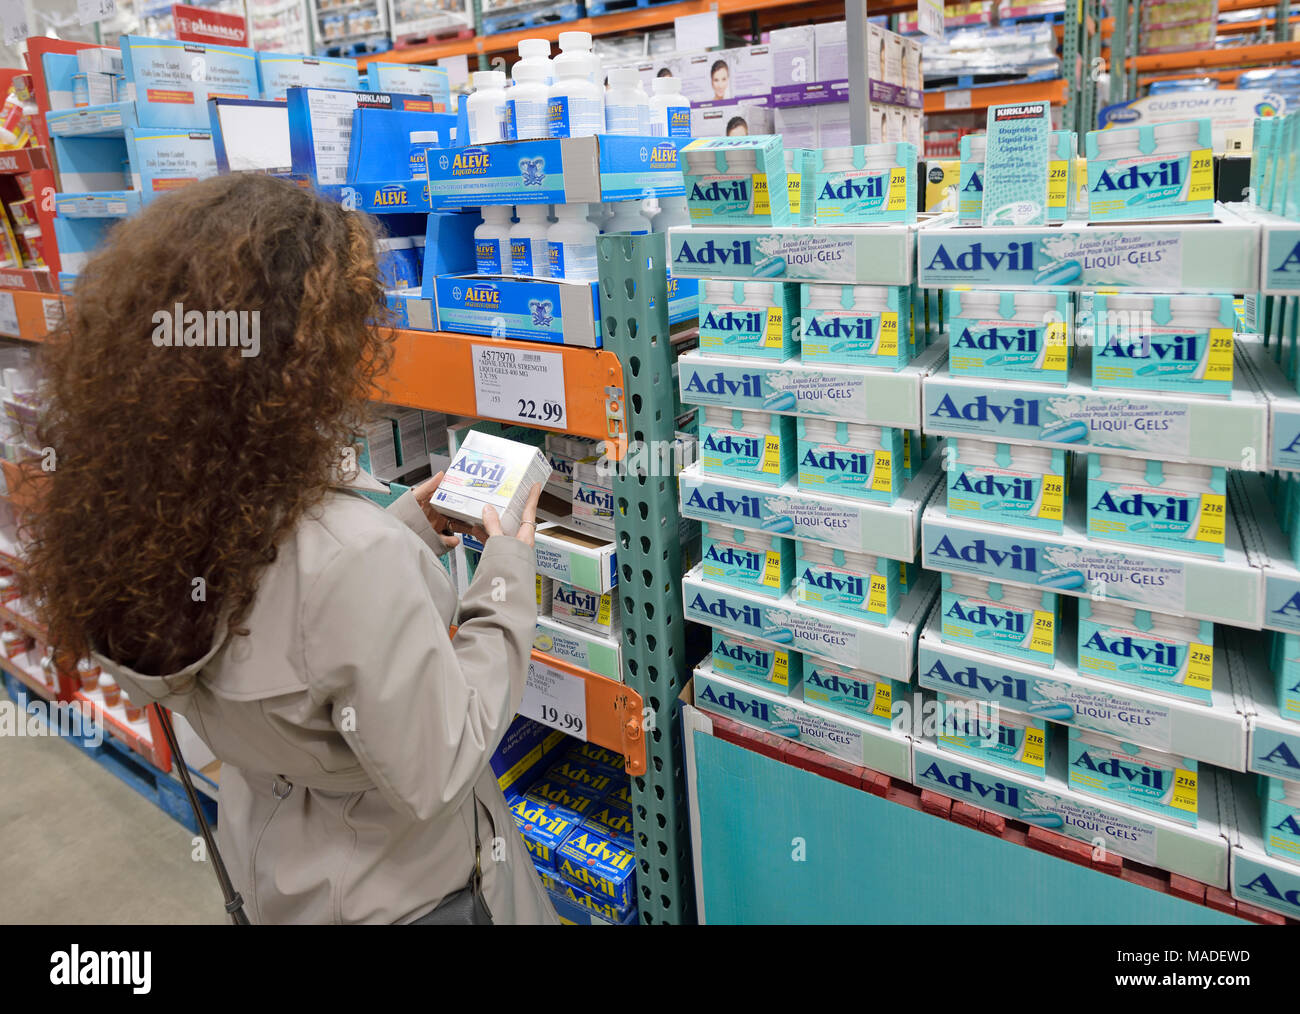 Woman picking a box of Advil liqui-gels pain relief medications at Costco Wholesale membership warehouse store pharmacy section. British Columbia, Can Stock Photo